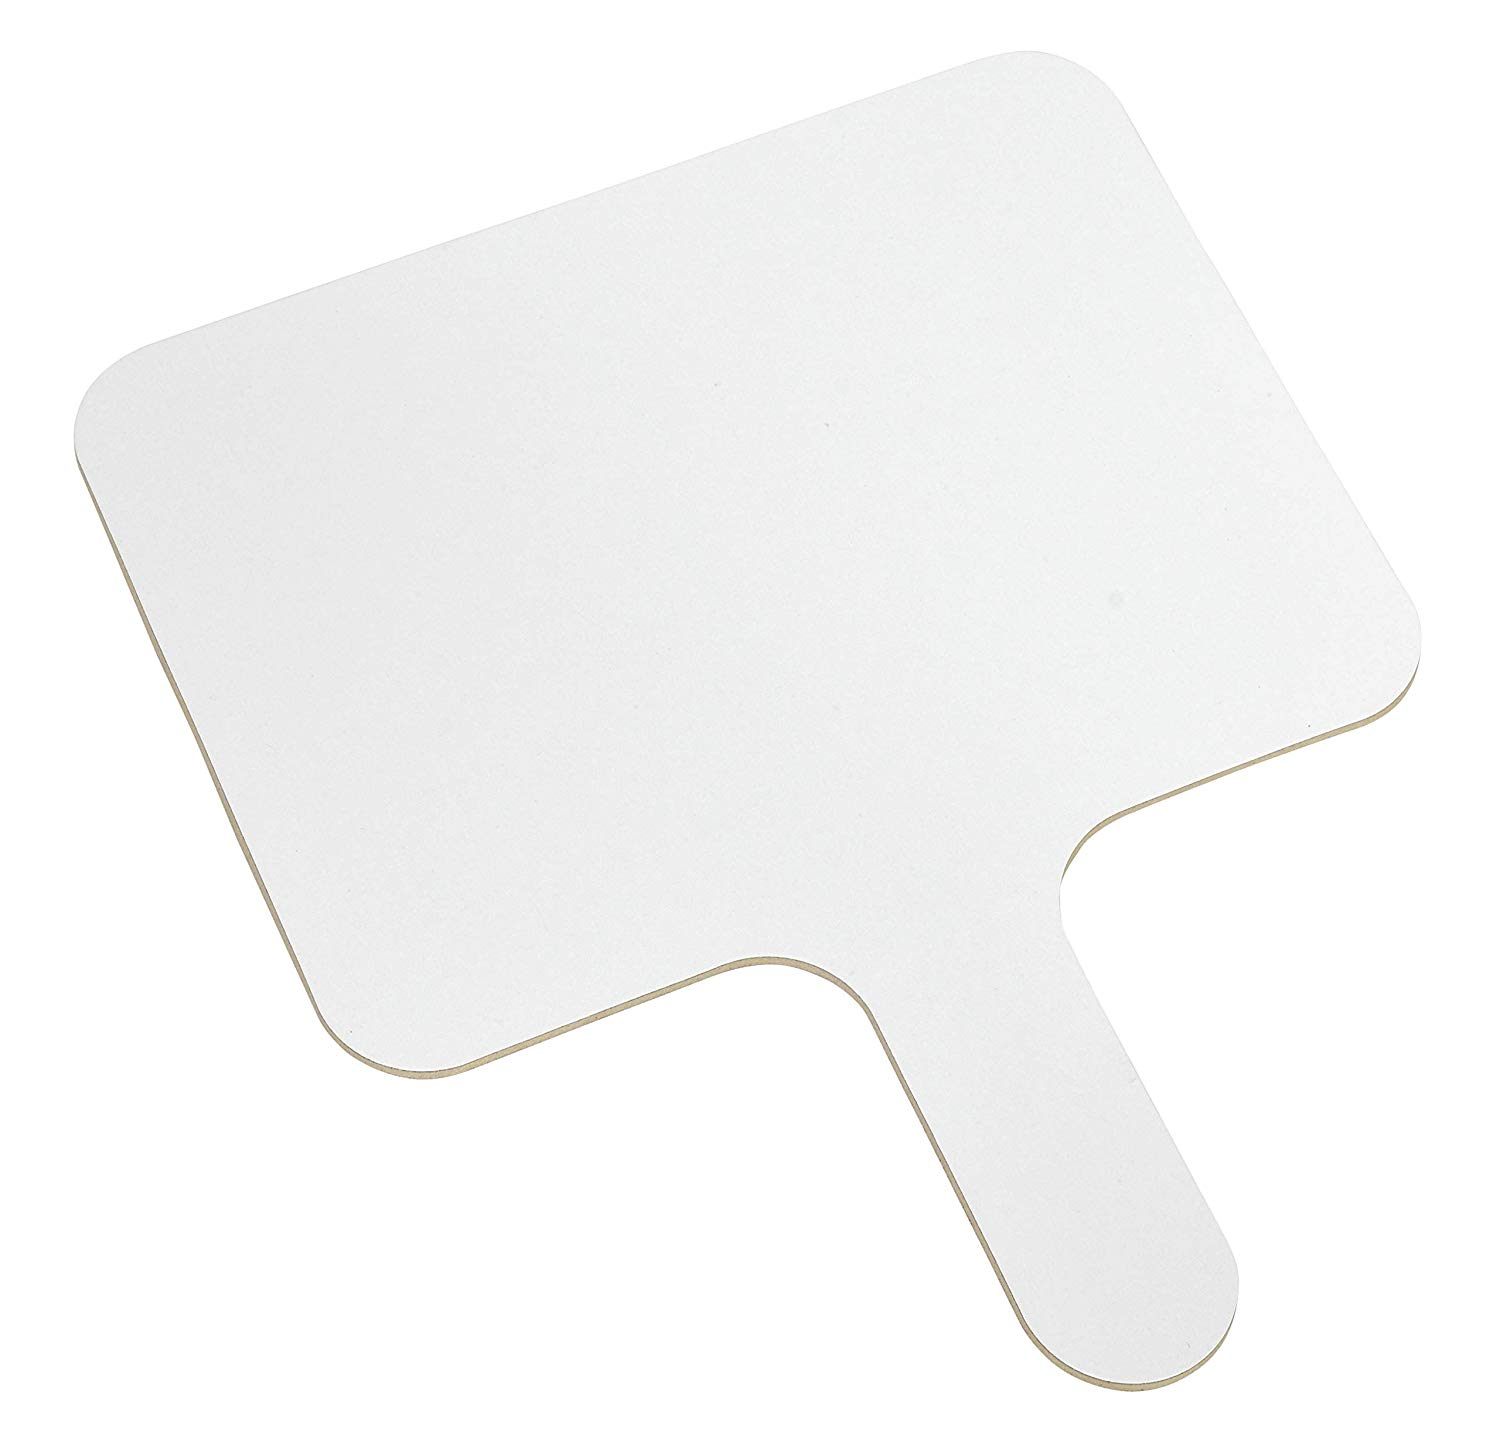 """8"""" x 6"""" Mini Dry Erase Board Paddle (Dual Sided - Games, Activities - Classroom, Teacher, Student, Learn, Homework, Study - Office, Presentation, Meeting, Boss)"""